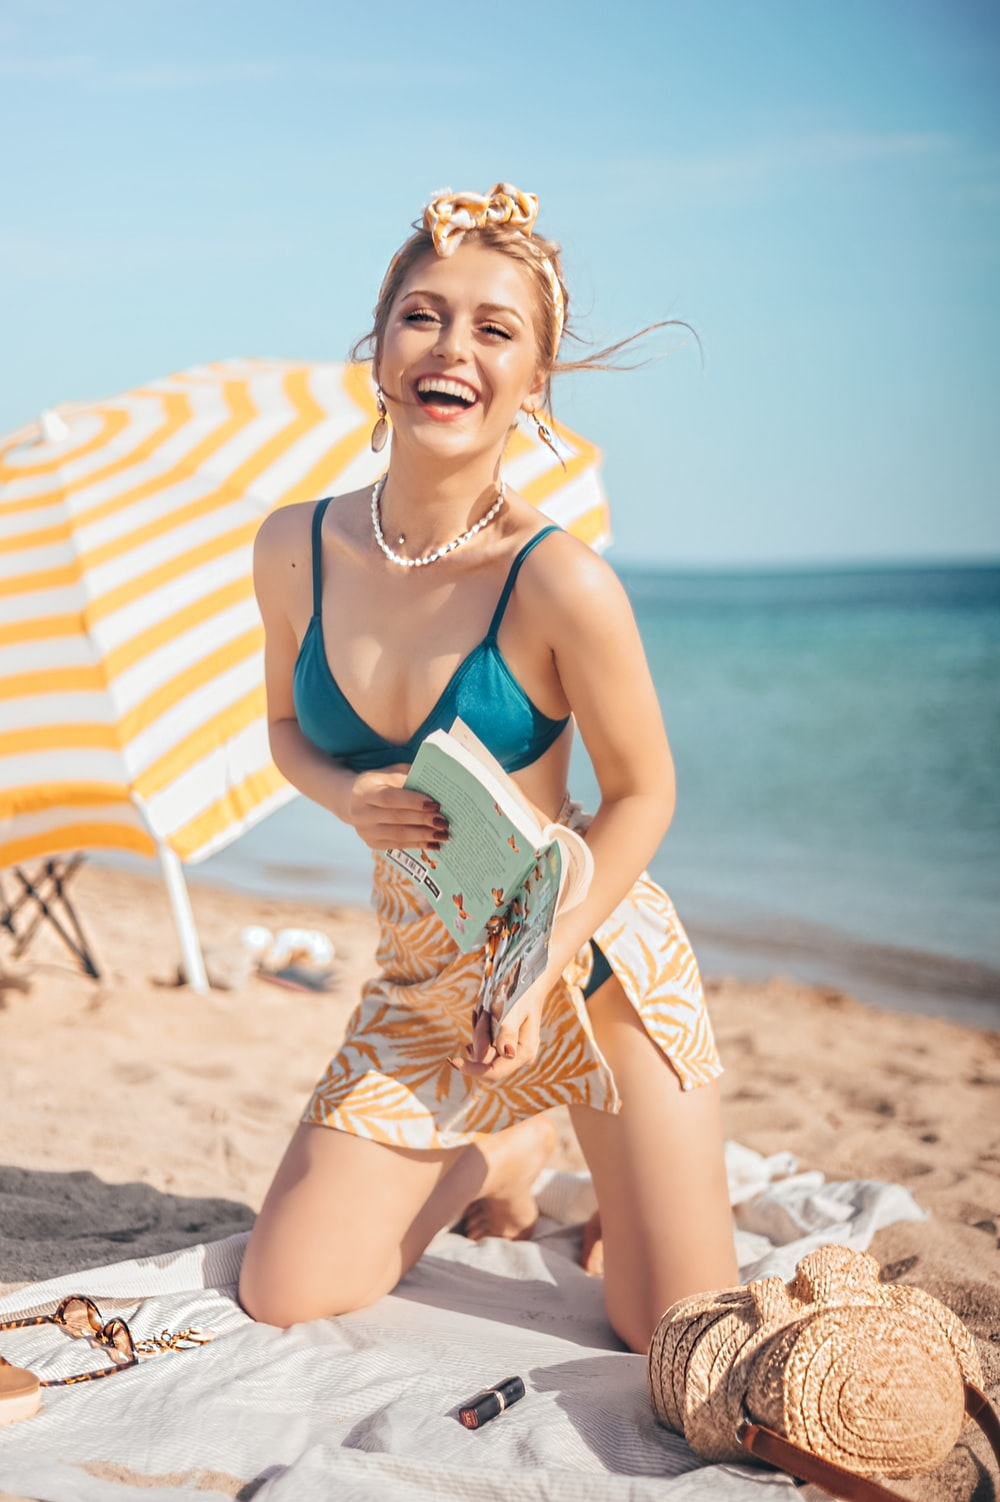 smiling woman in blue brassiere kneeling on white textile on shore during daytime